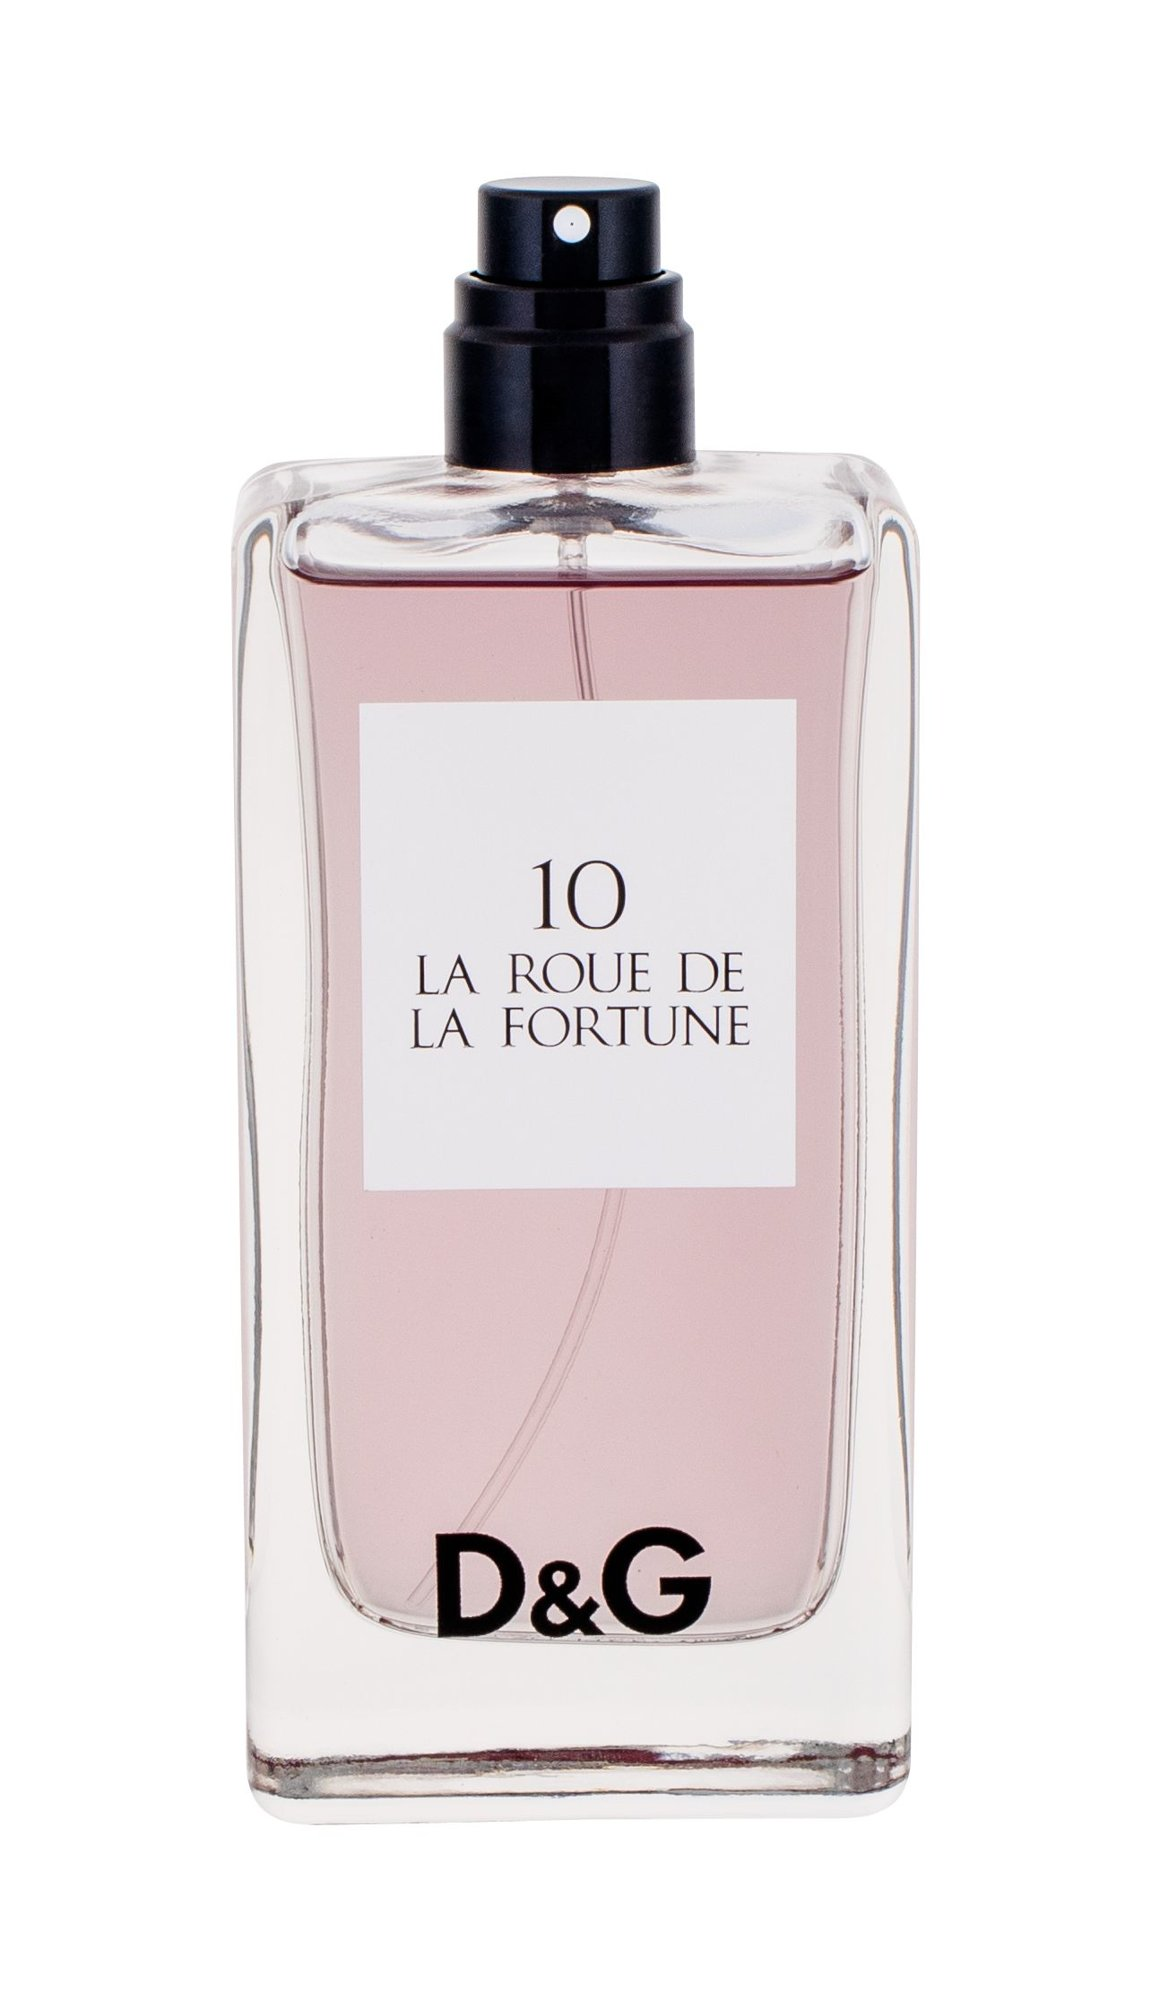 Dolce&Gabbana D&G Anthology La Roue de la Fortune 10 EDT 100ml